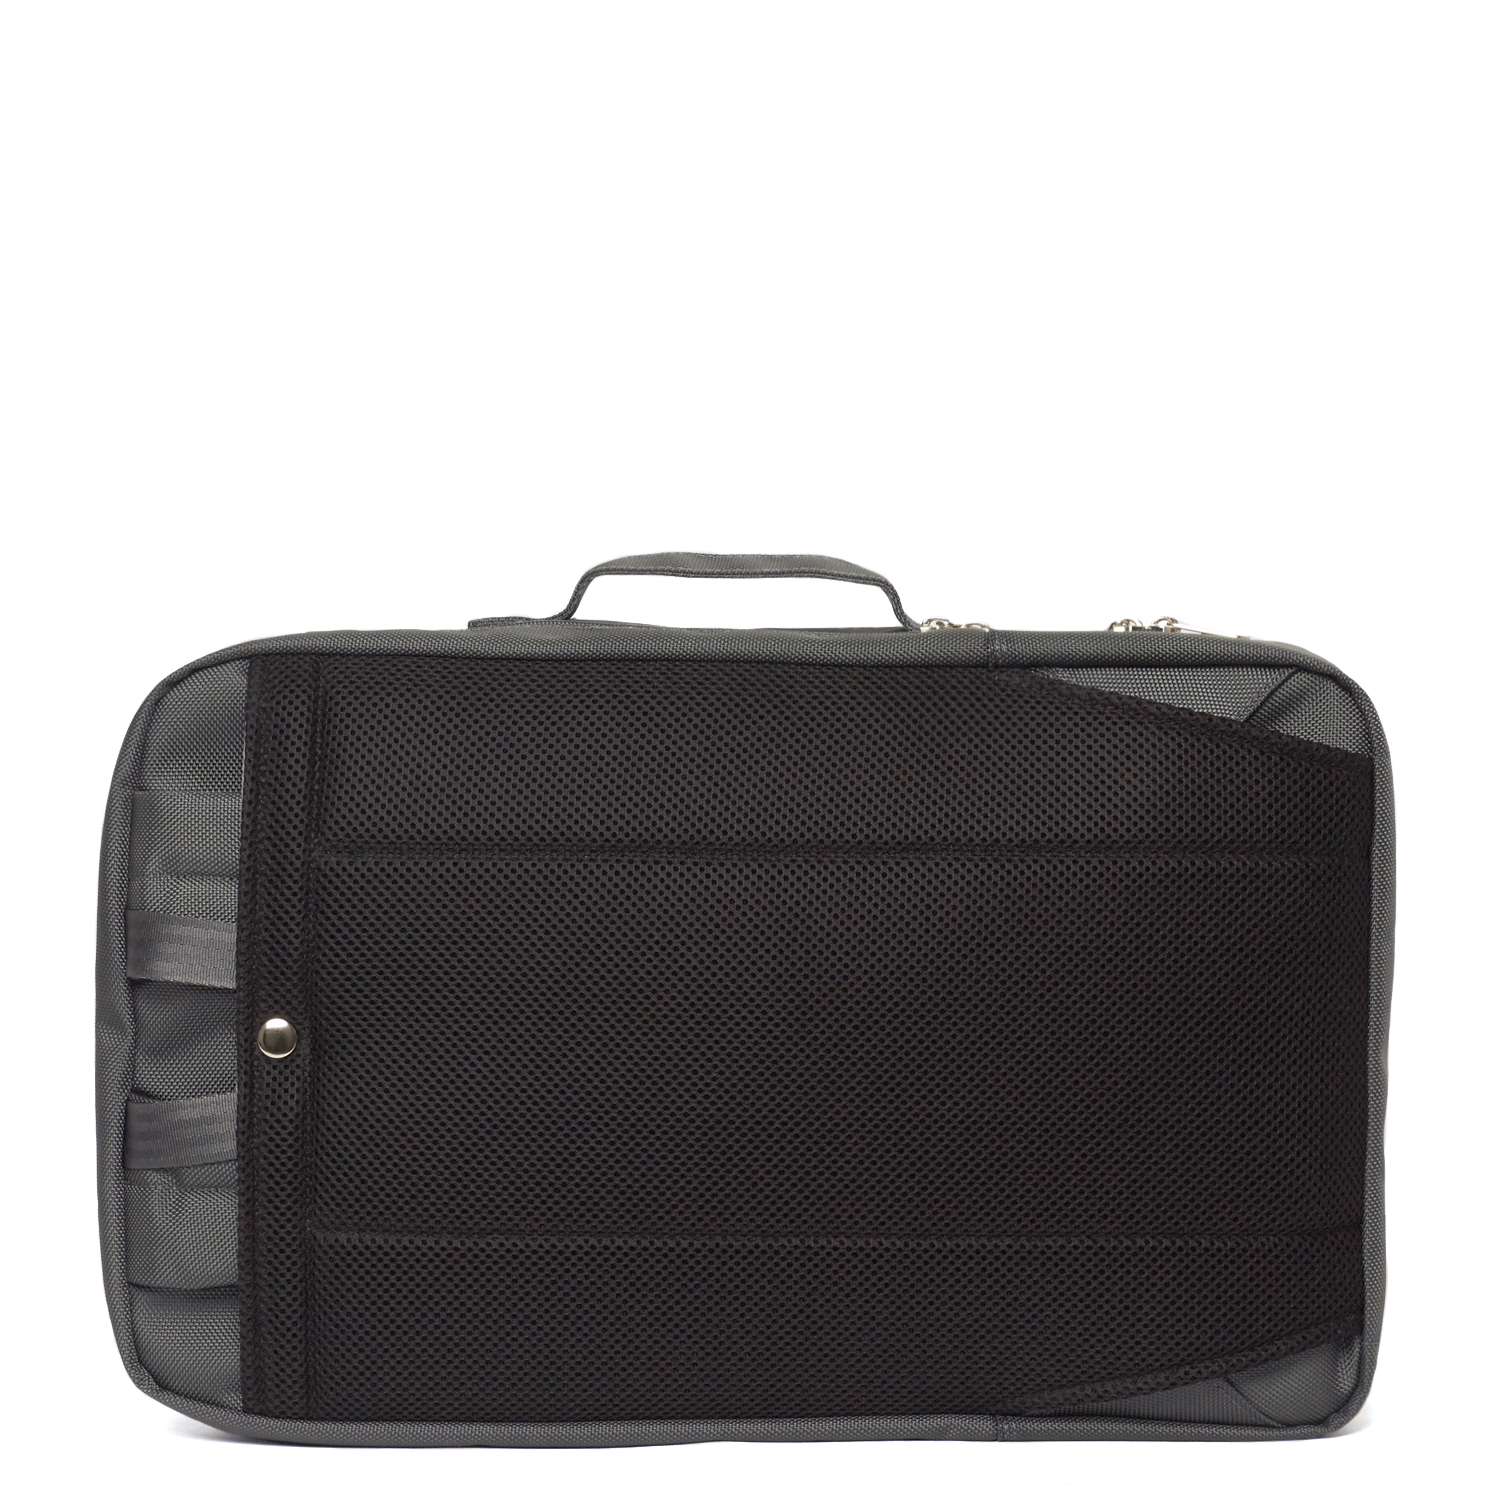 1680D BALLISTIC 2WAY BAG / CHARCOAL